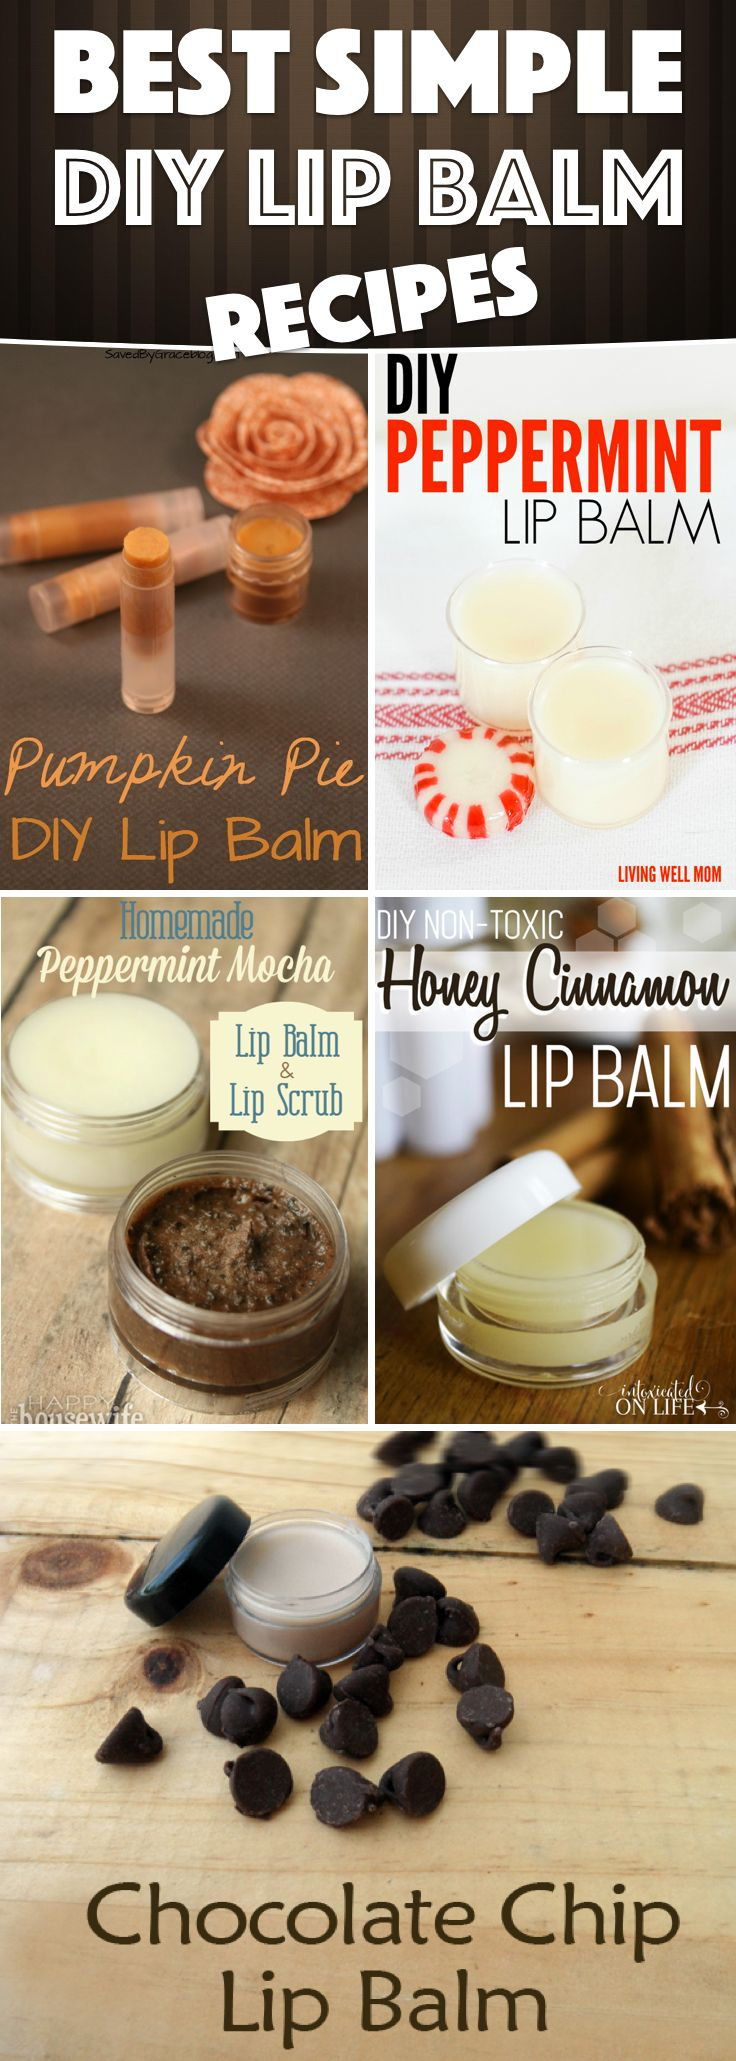 Make Your Own DIY Lip Balm With These 25 Quick and Easy Recipes